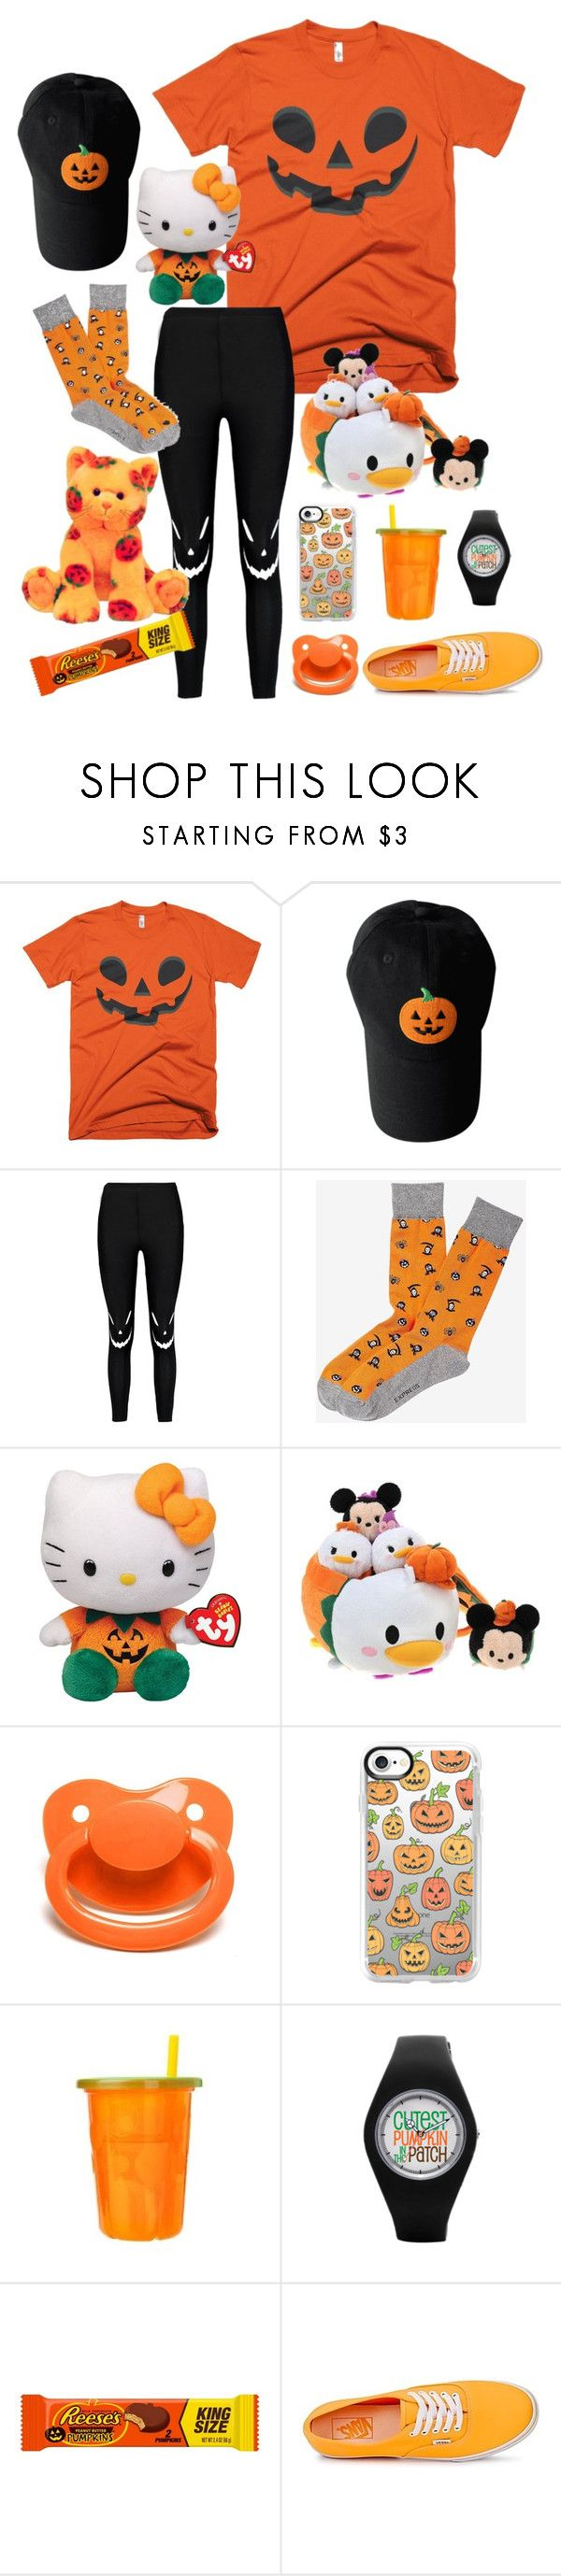 """pumpkin baby"" by puffydinosaurs ❤ liked on Polyvore featuring Boohoo, Express, Hello Kitty, Disney, Casetify, The First Years and Vans"